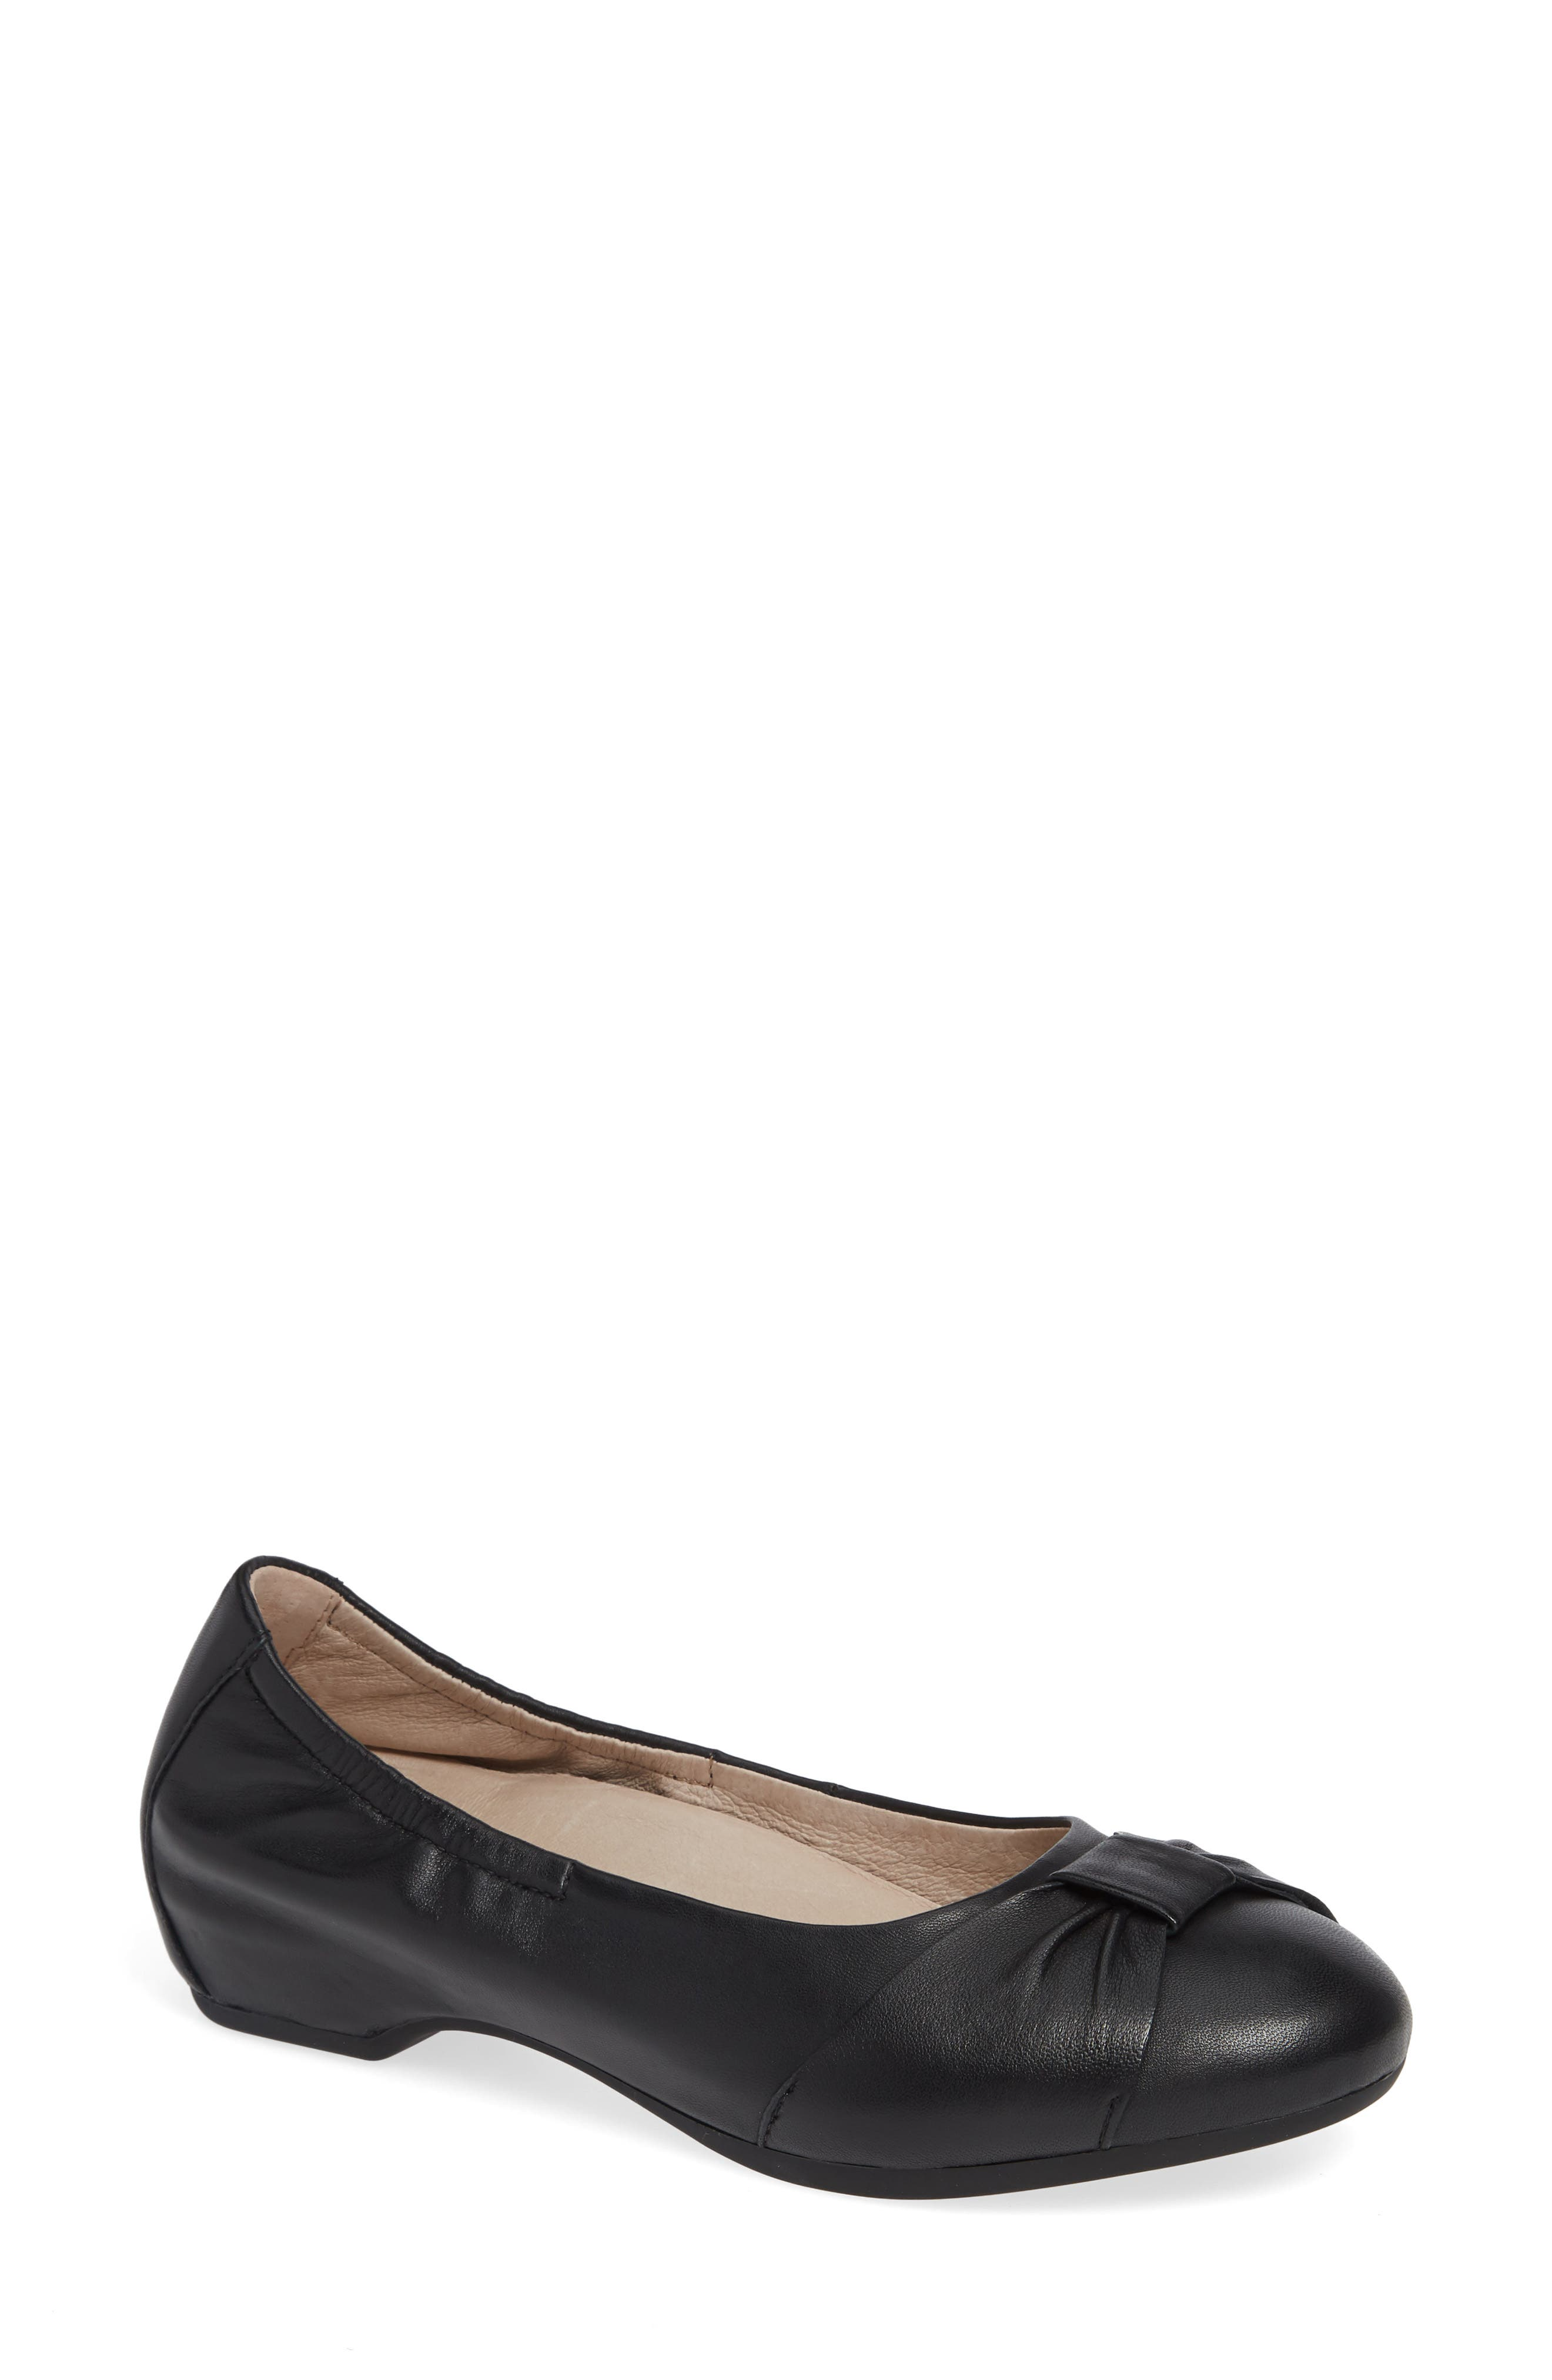 Lina Bow Pump,                         Main,                         color, BLACK LEATHER